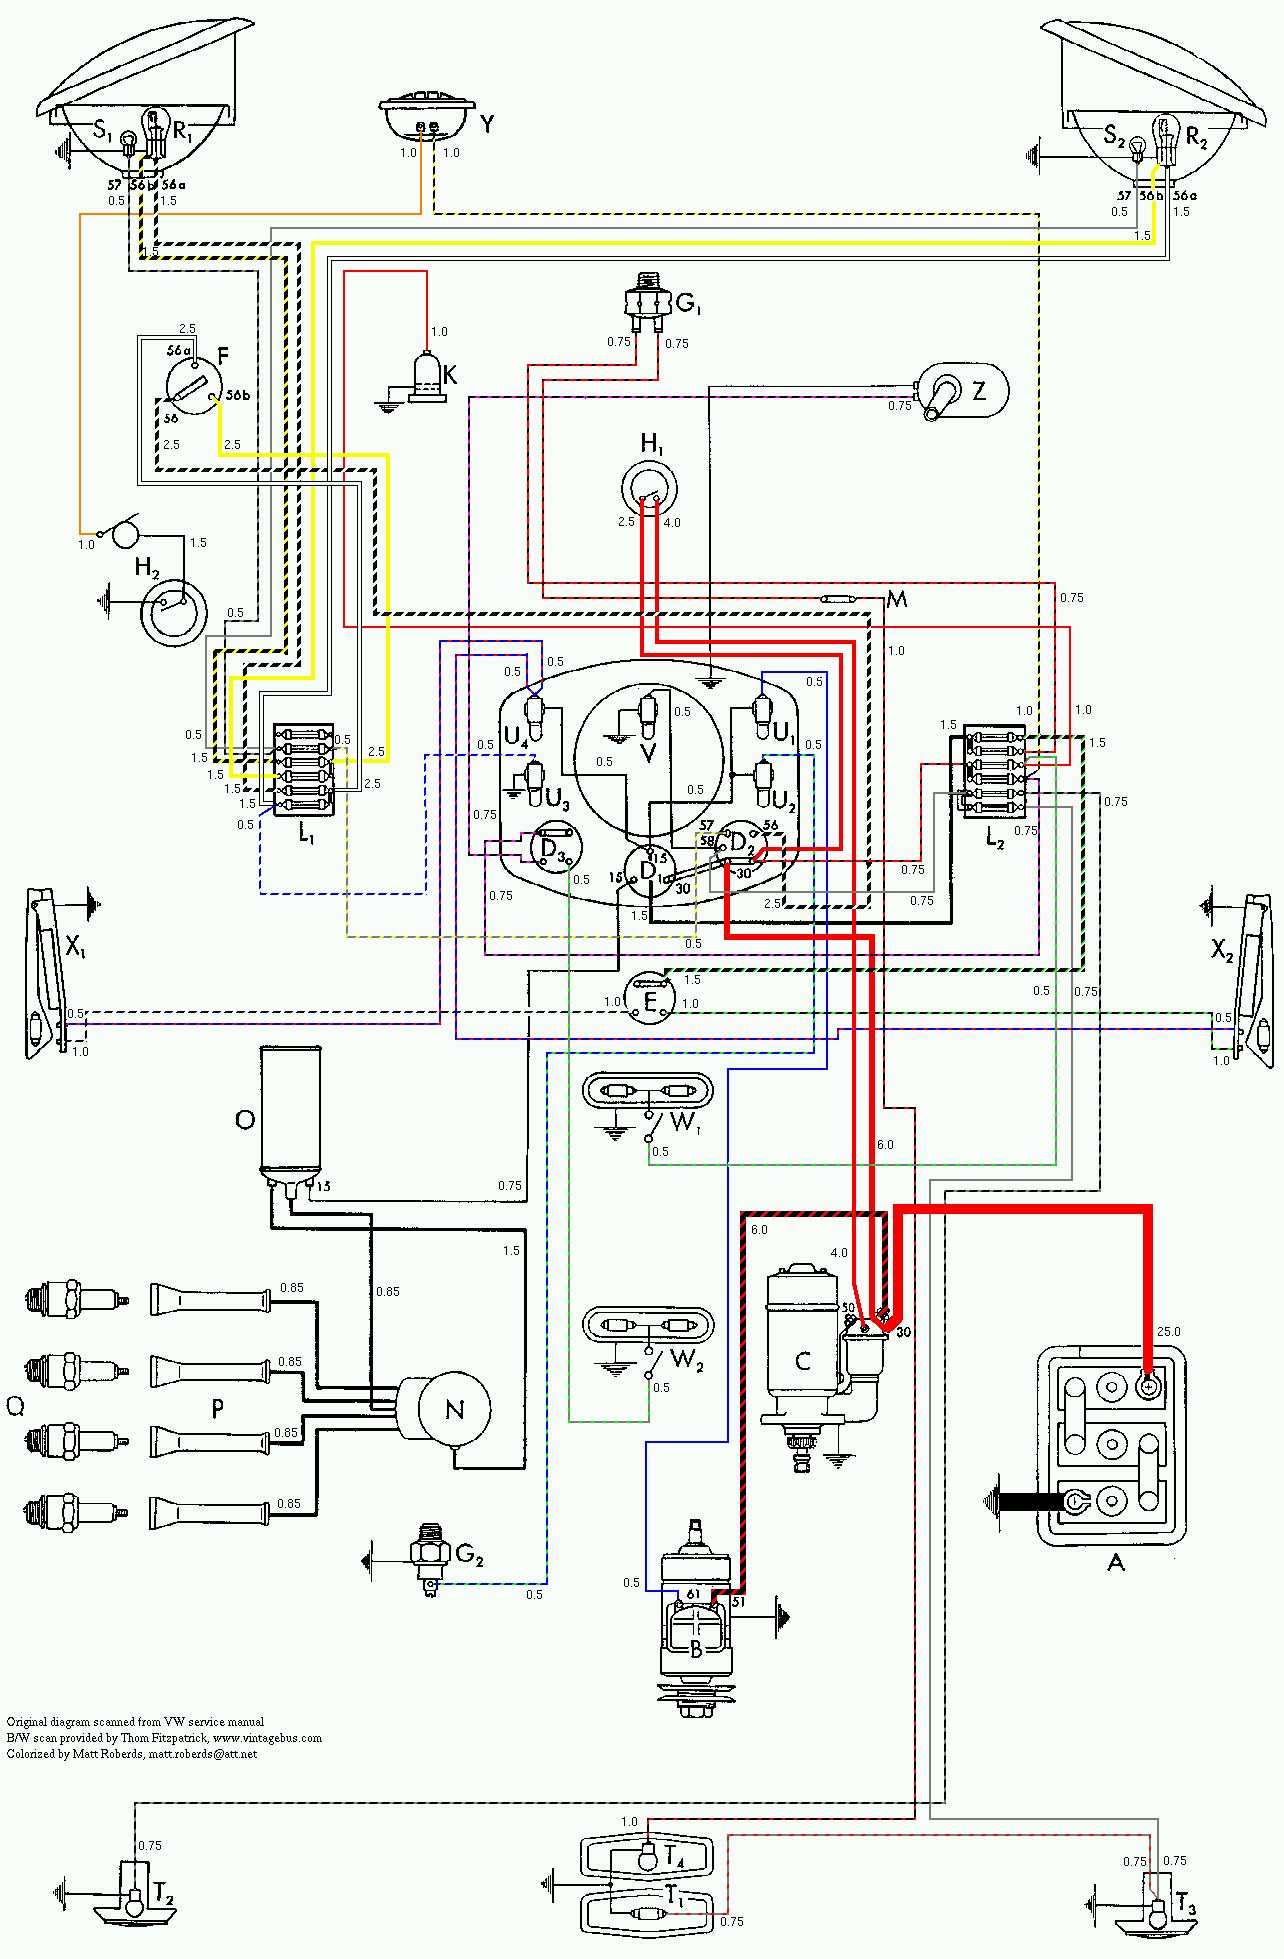 hight resolution of wiring diagram also vanagon subaru conversion wiring furthermore rv subaru vanagon wiring diagram